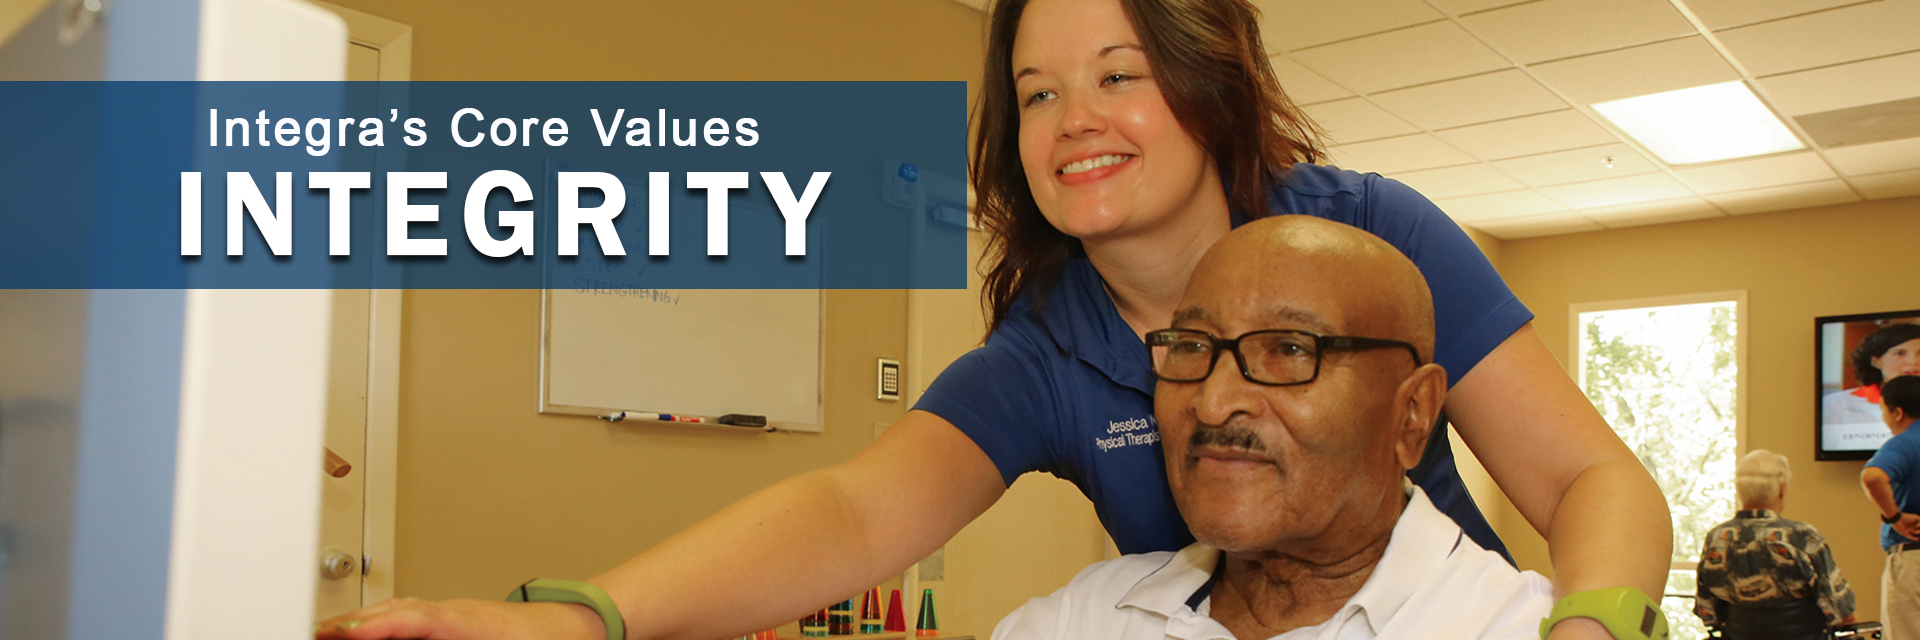 integra associate performing physical therapy with patient. Core Value Integrity